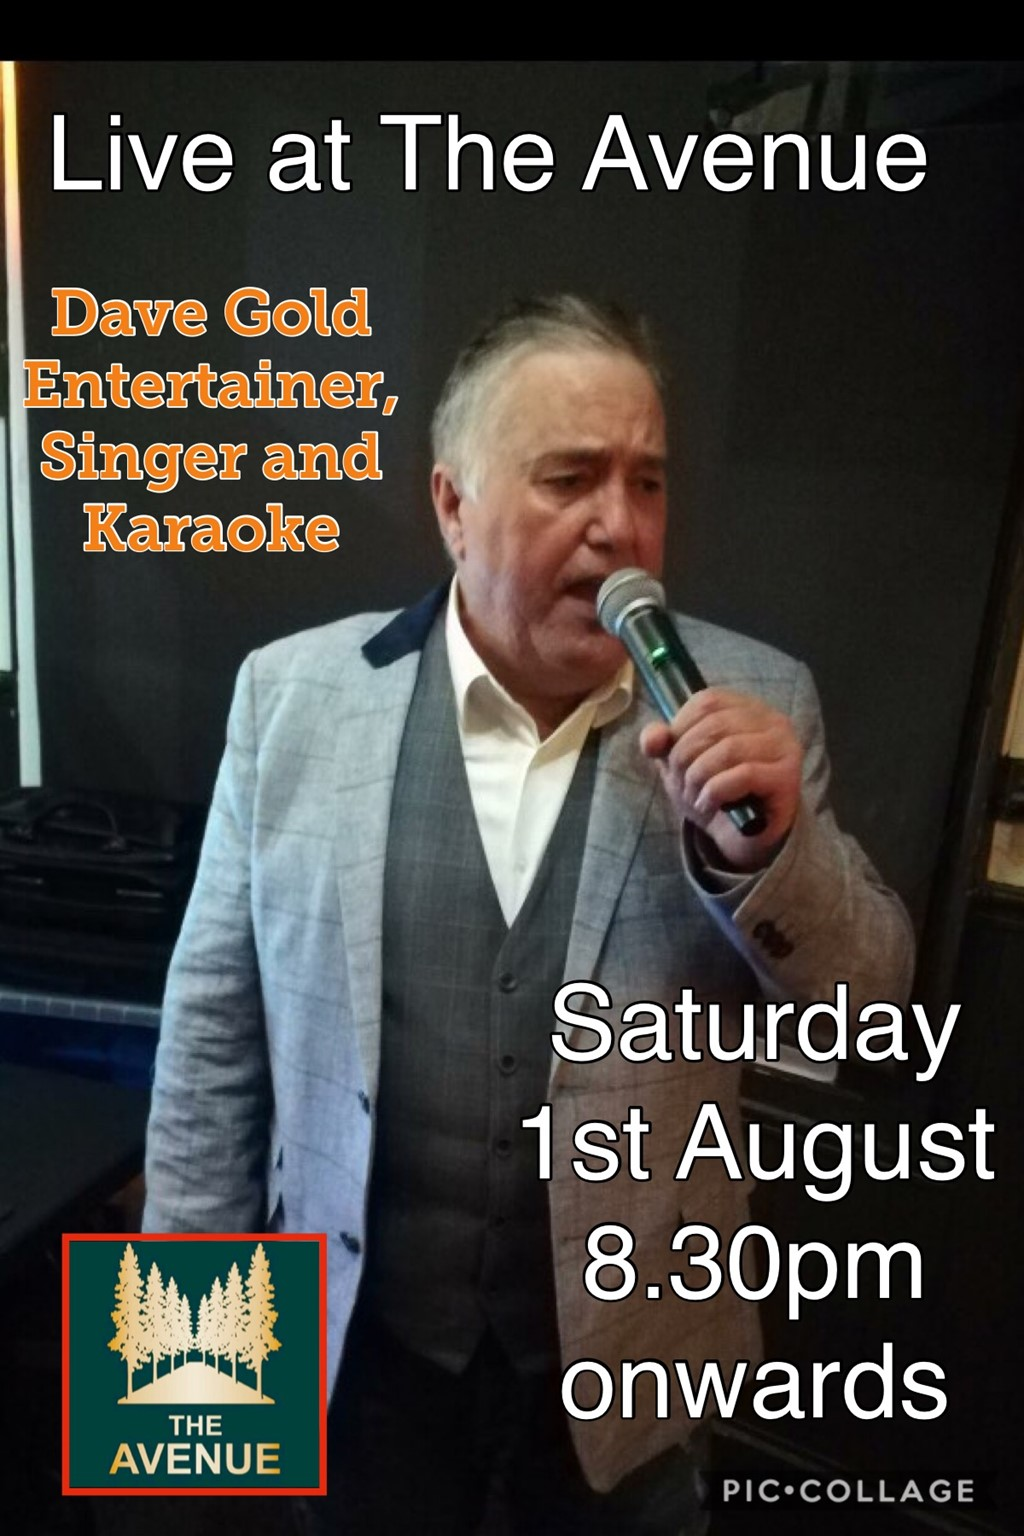 Dave Gold singing live at The Avenue